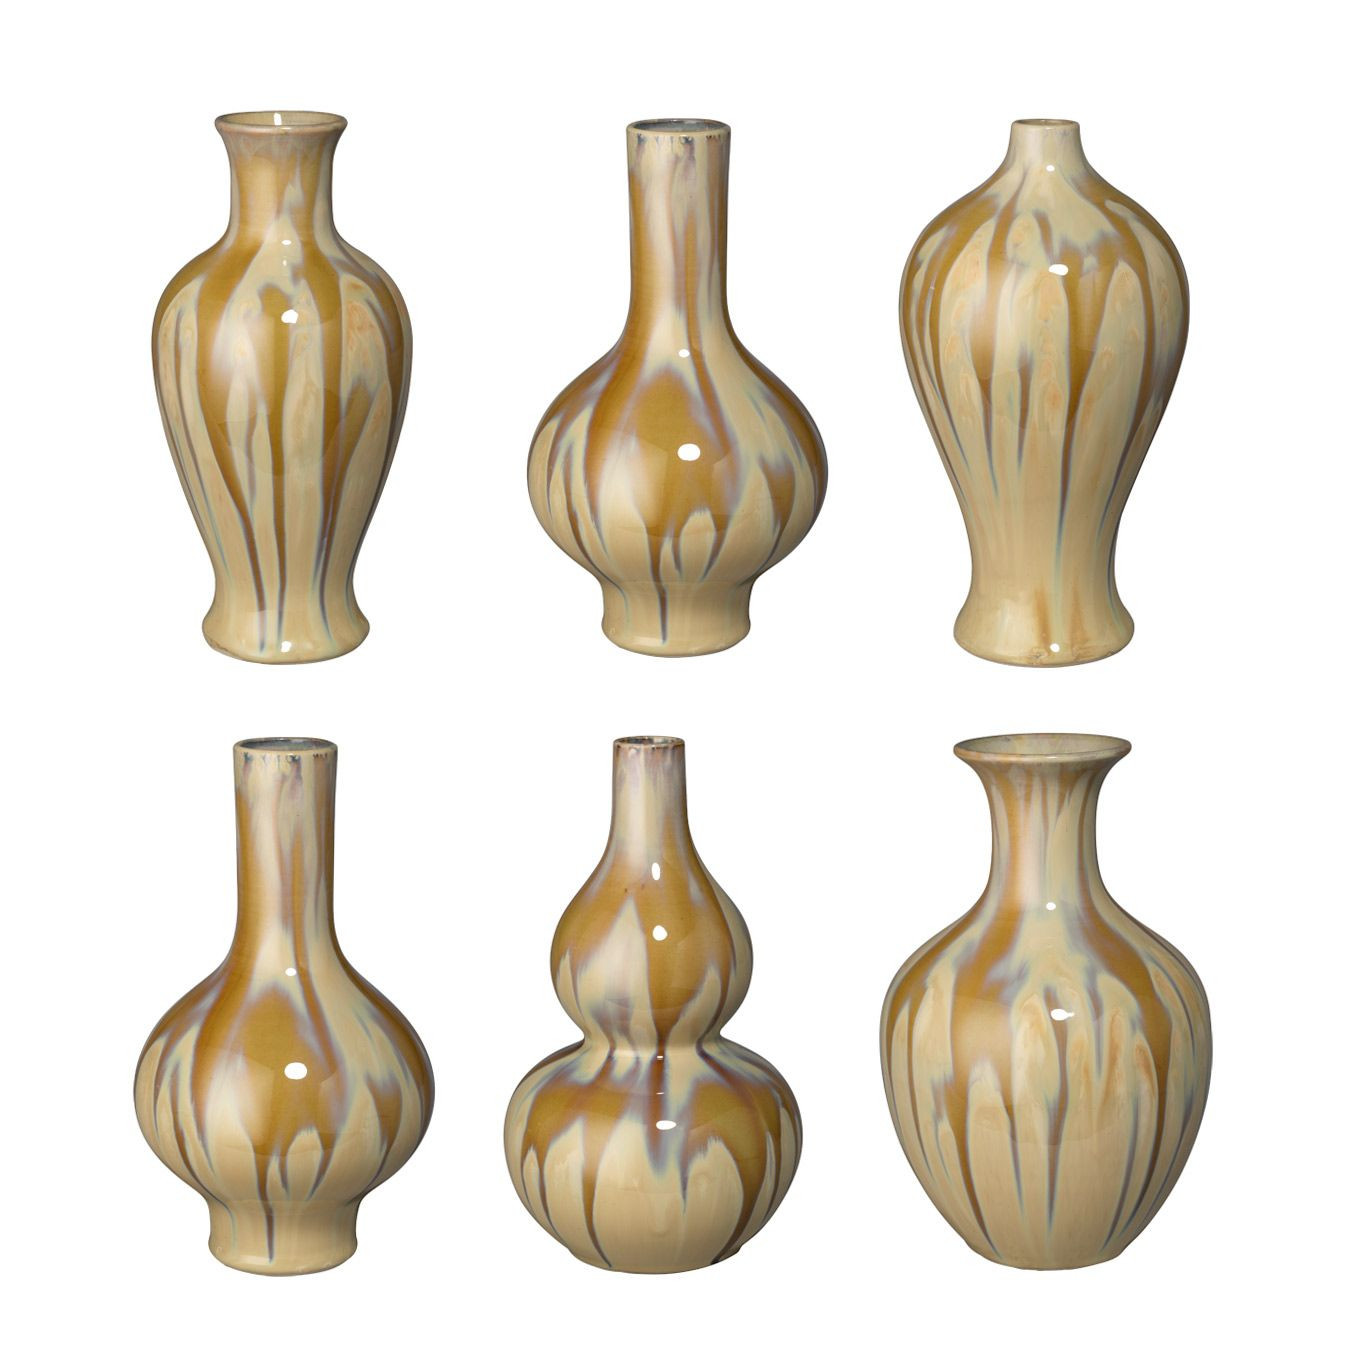 ceramic vase set of jamie young zuni ceramic vases set of 6 modern furniture home in jamie young zuni ceramic vases set of 6 modern furniture home decor